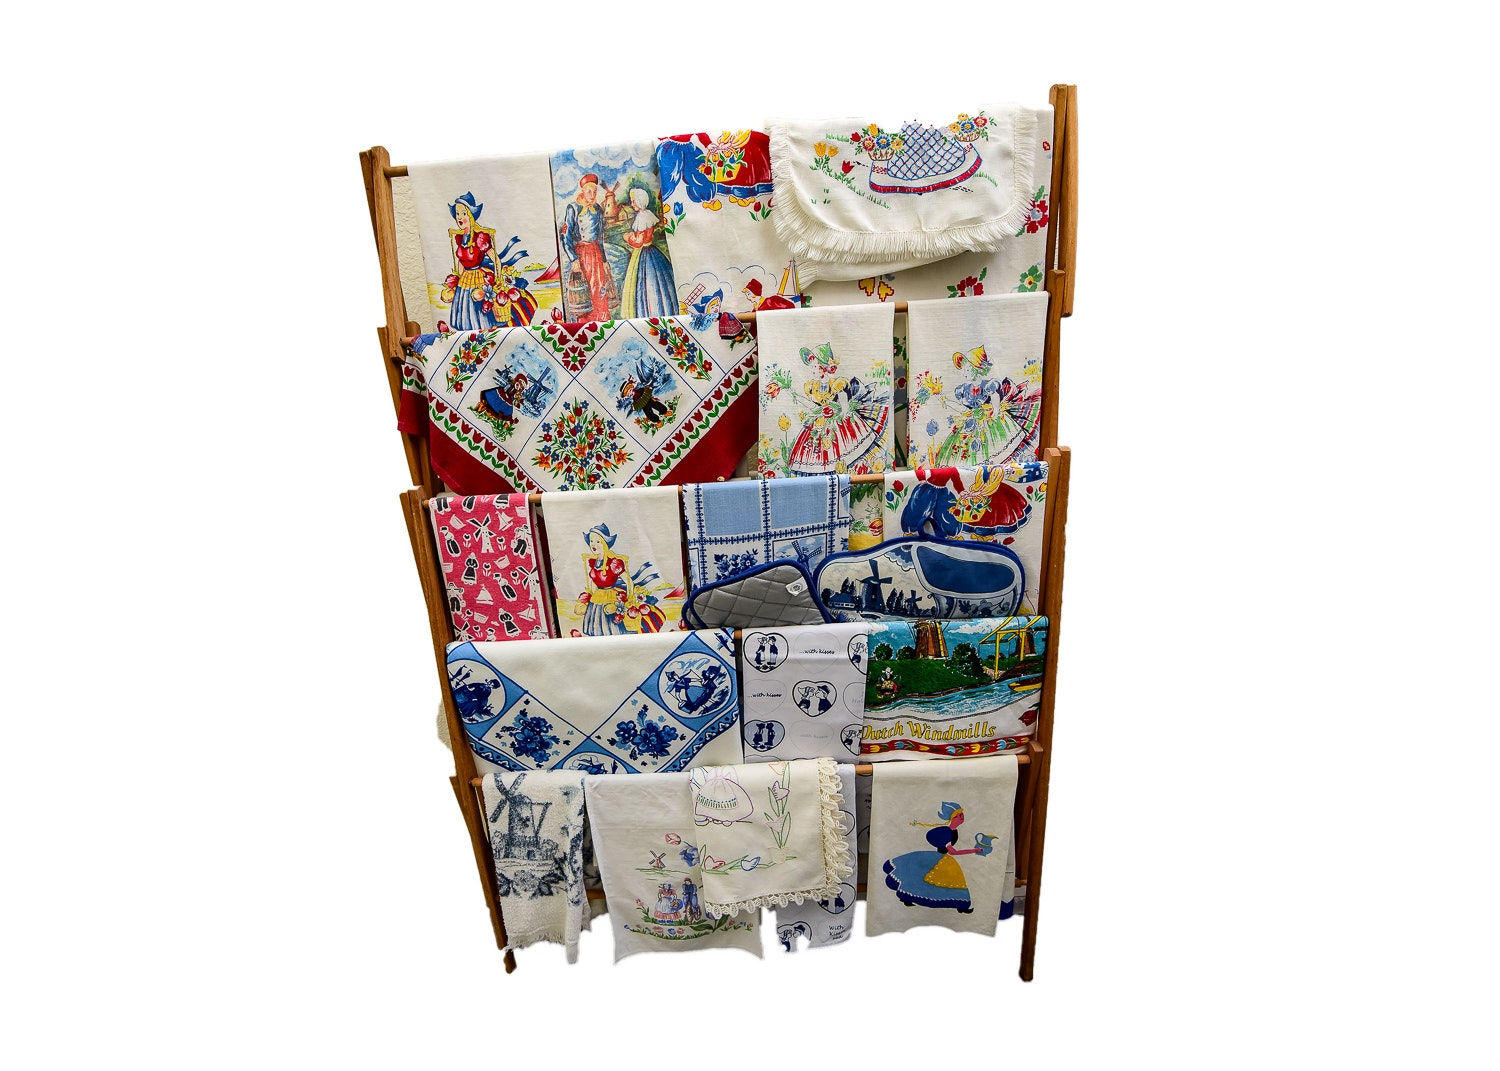 Vintage Wood Rack with Collection of Dutch Tea Towels